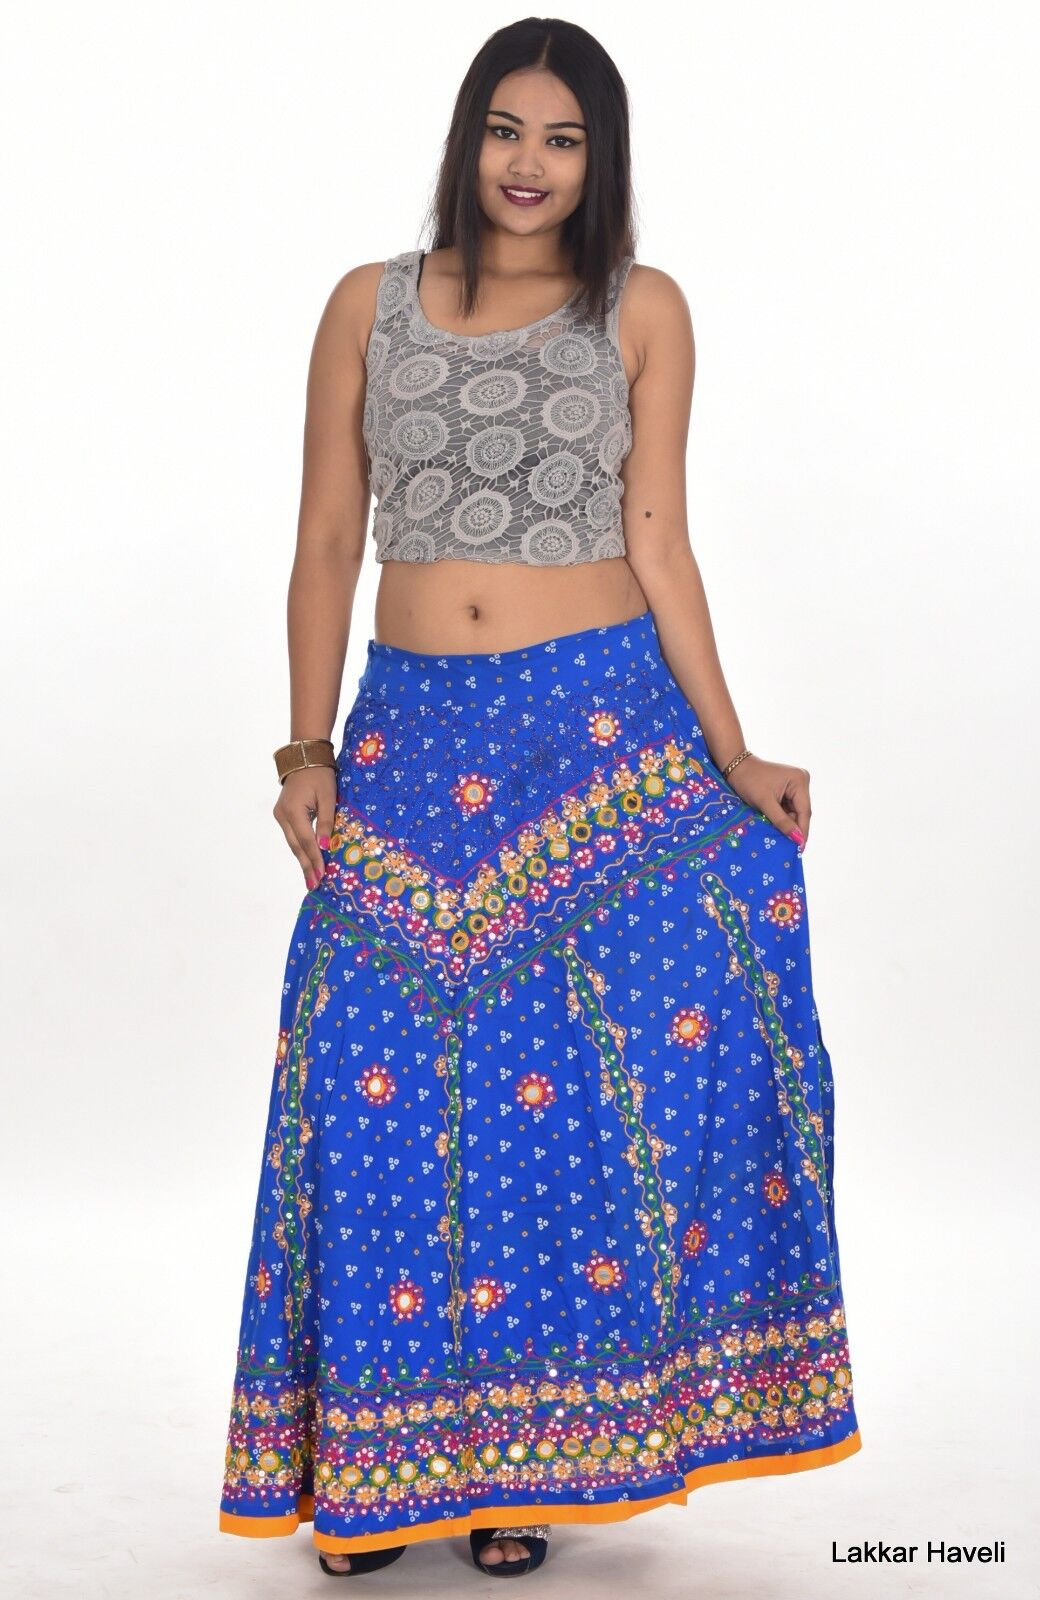 Indian 100% Cotton Women's Long Skirt Hippie bluee color Plus Size Embroidered